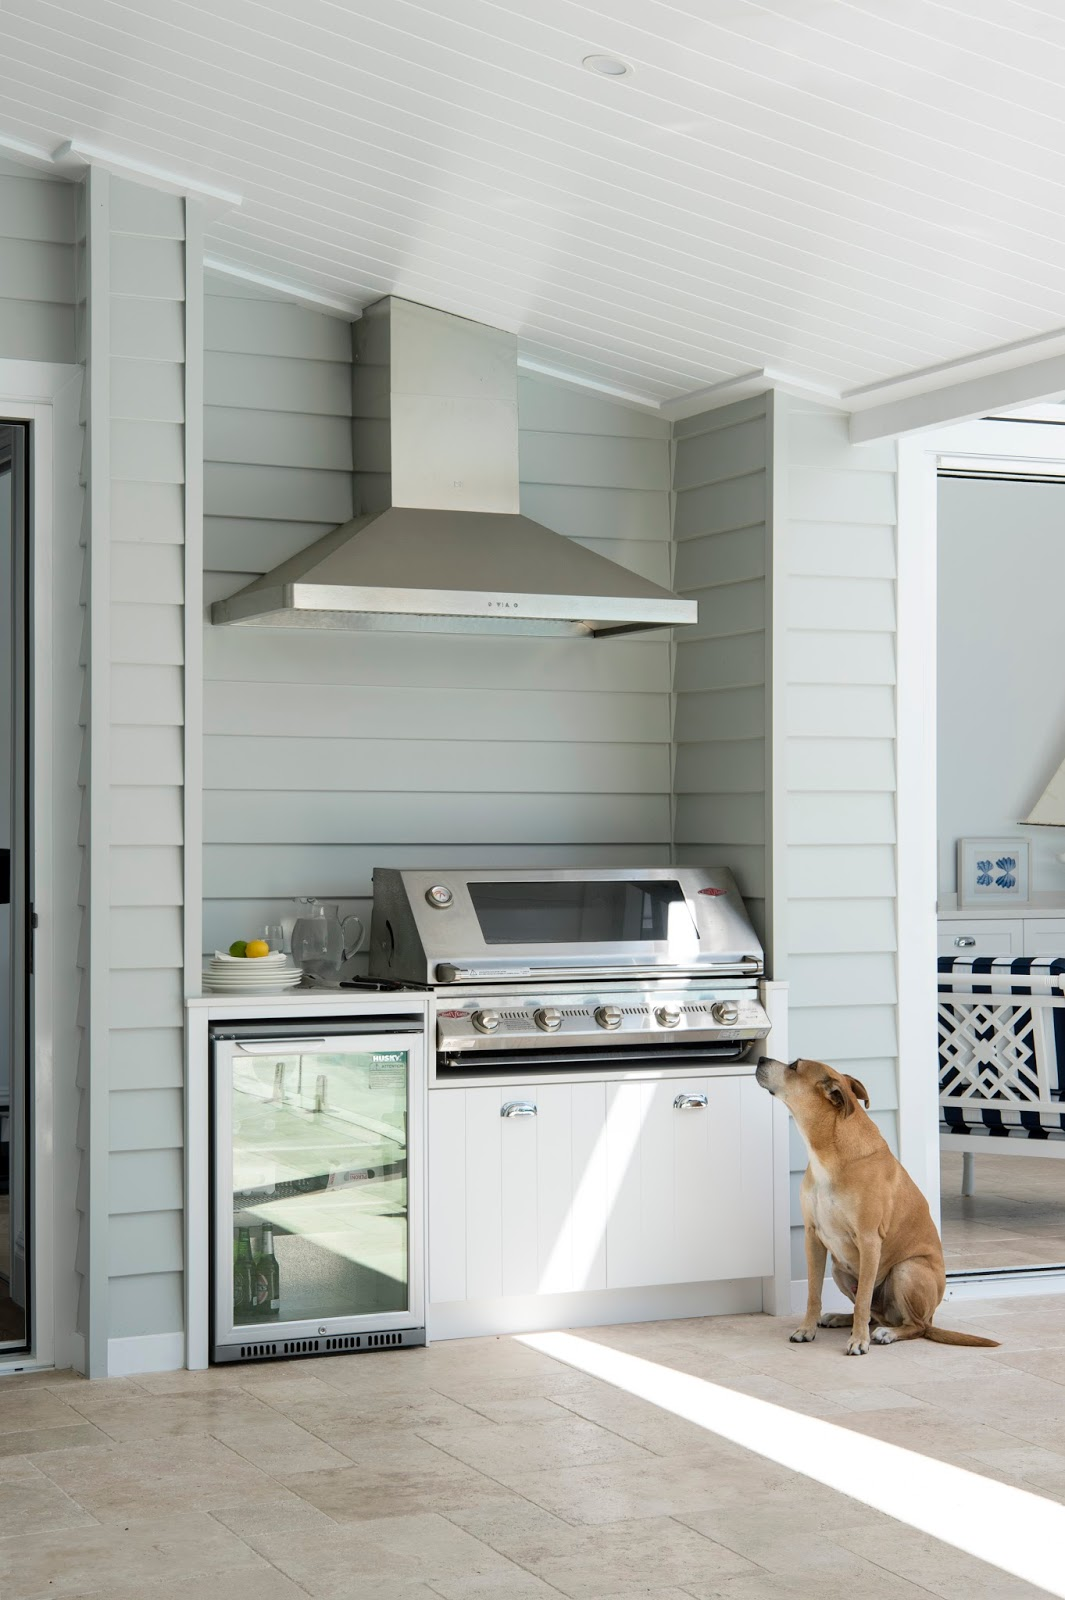 Adding A Fabulous Alfresco Area Landscaped With Lush Greenery And The All  Important BBQ Within Your Hamptons Design Is Certainly A Trend That Is Here  To ...